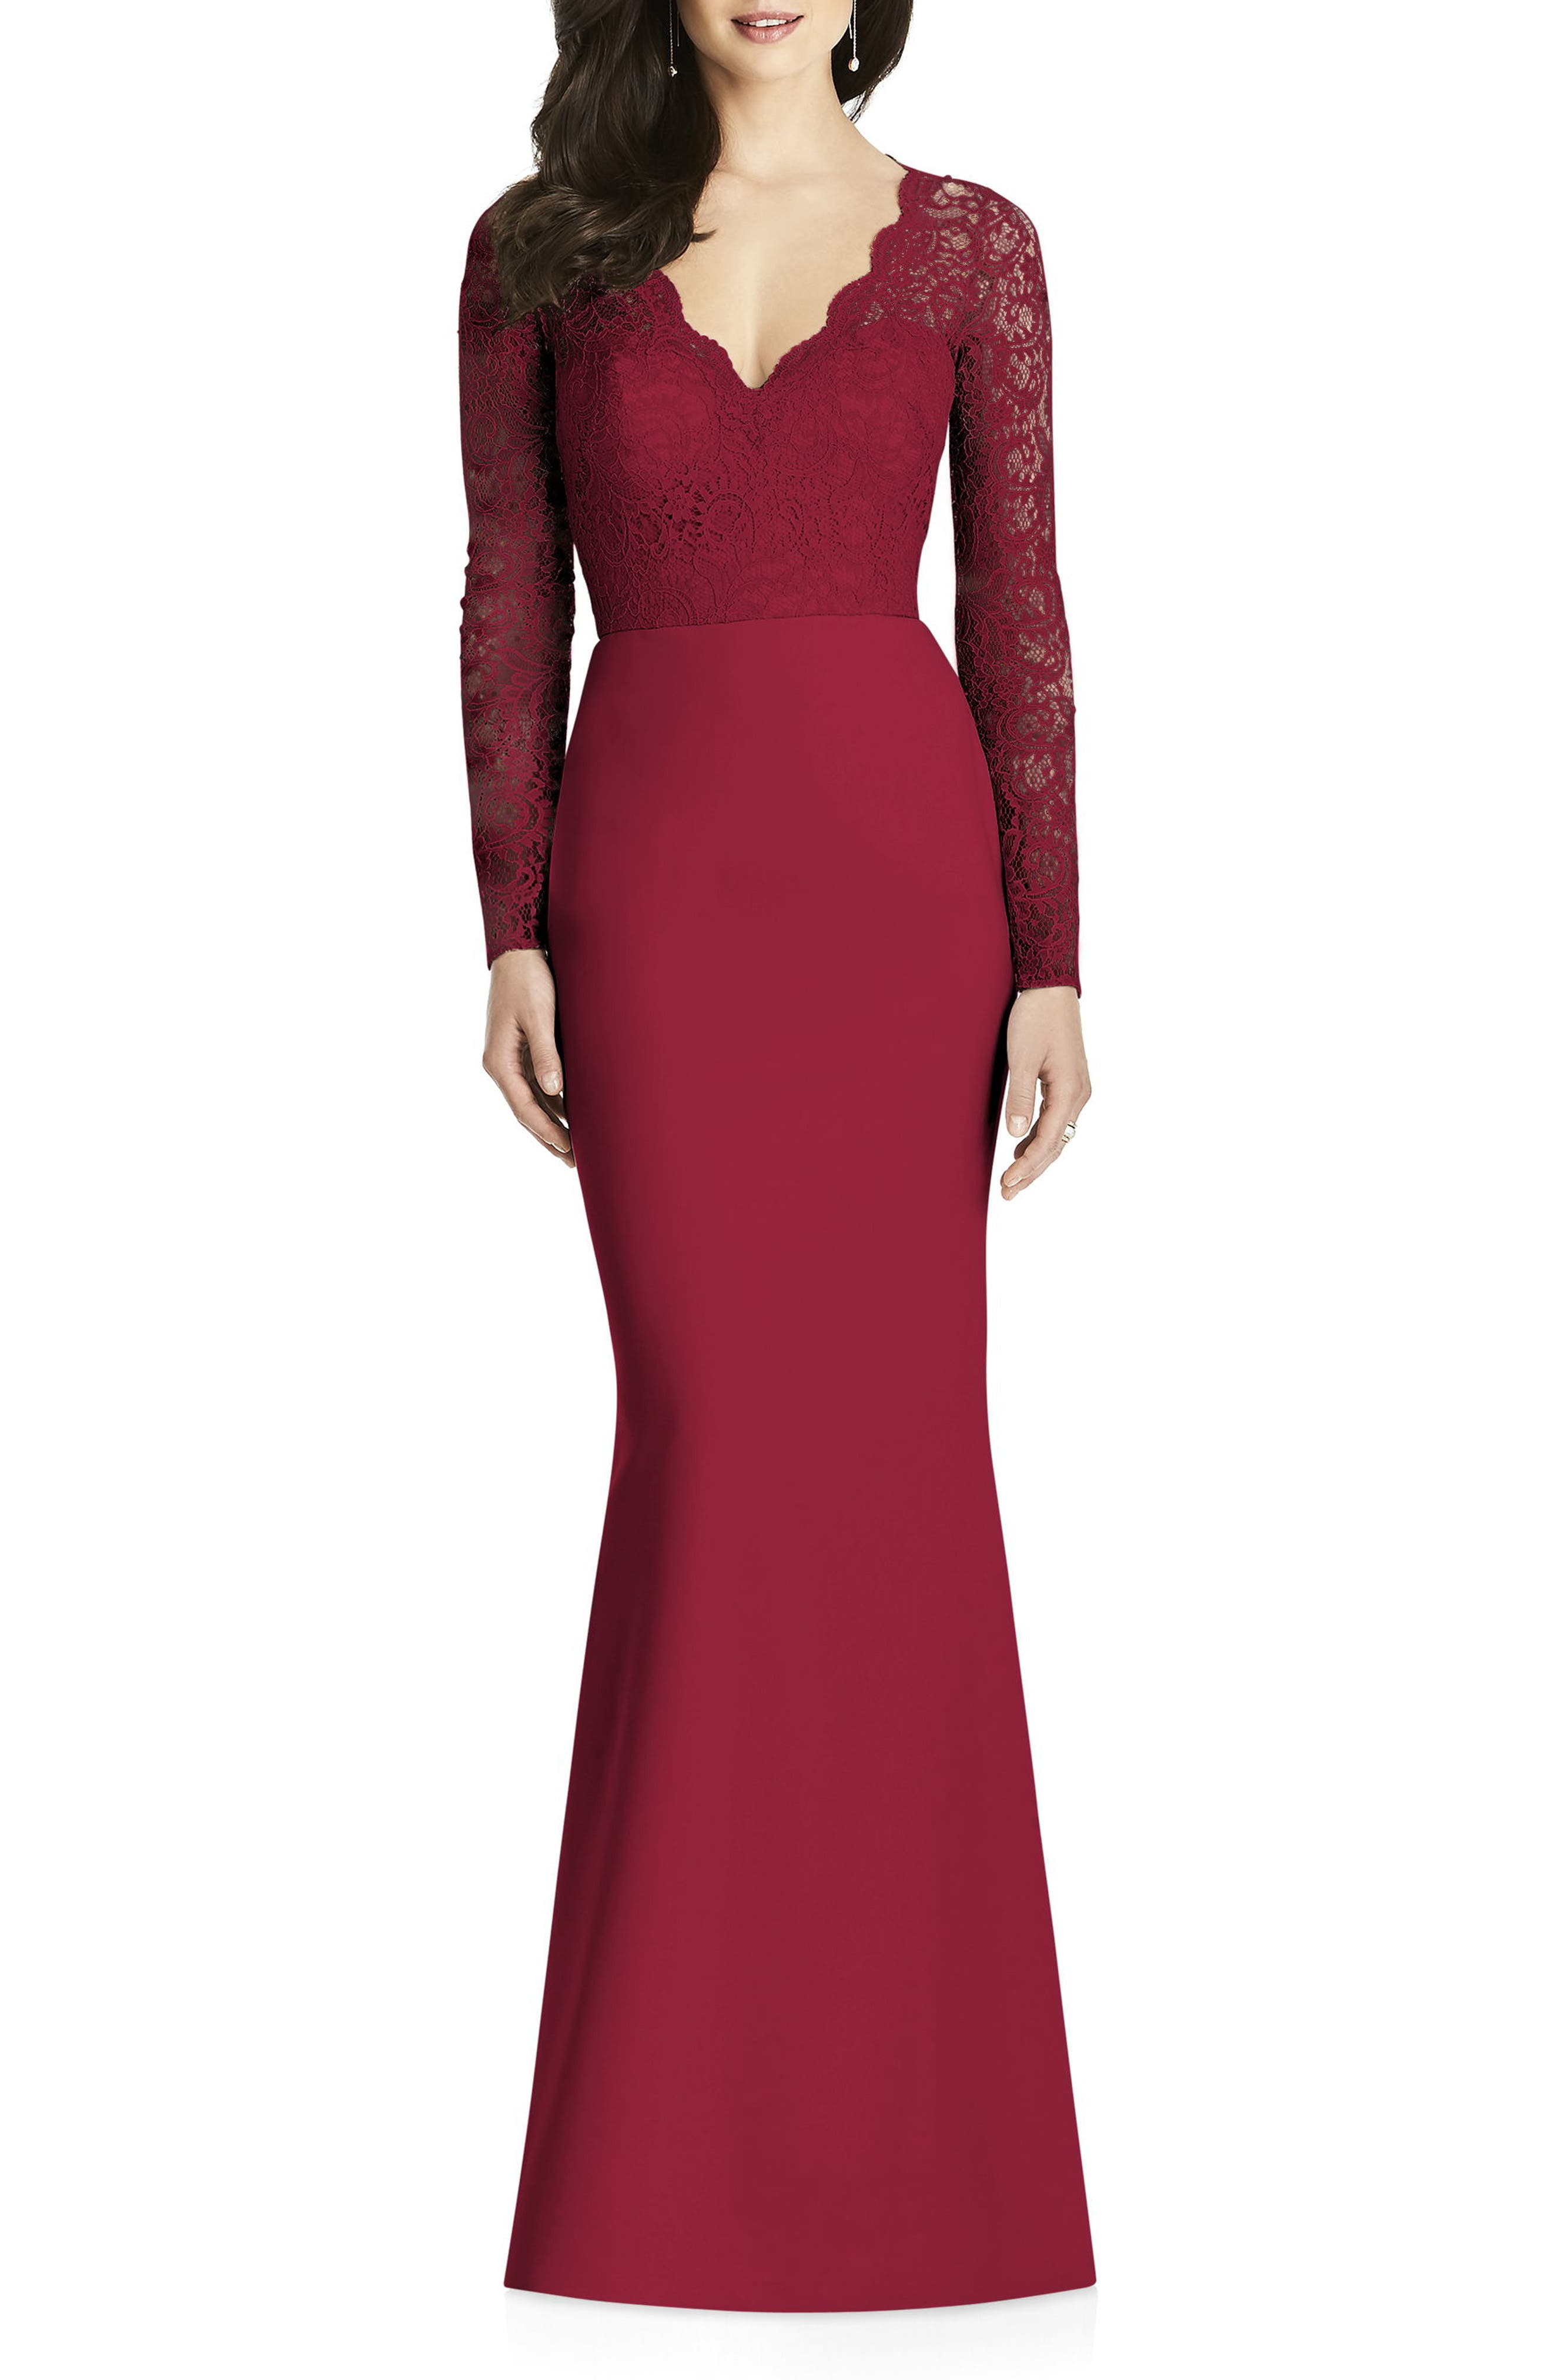 Red Gown Dresses for Women